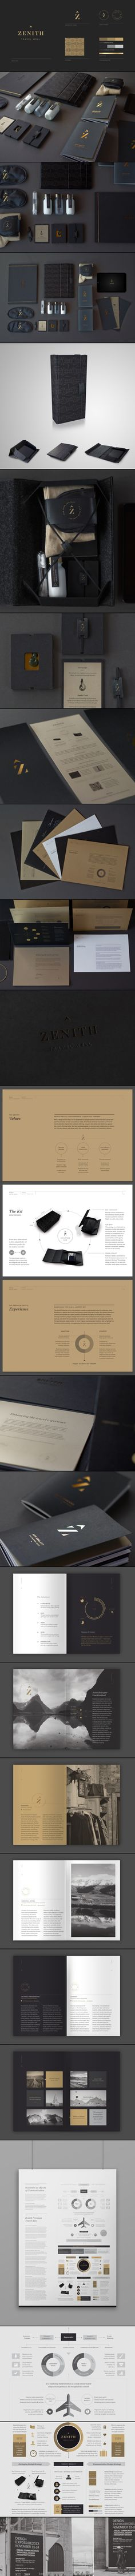 Zenith Premium Travel Kits - NePackaging Description w Zealand #identity #packaging #branding PD